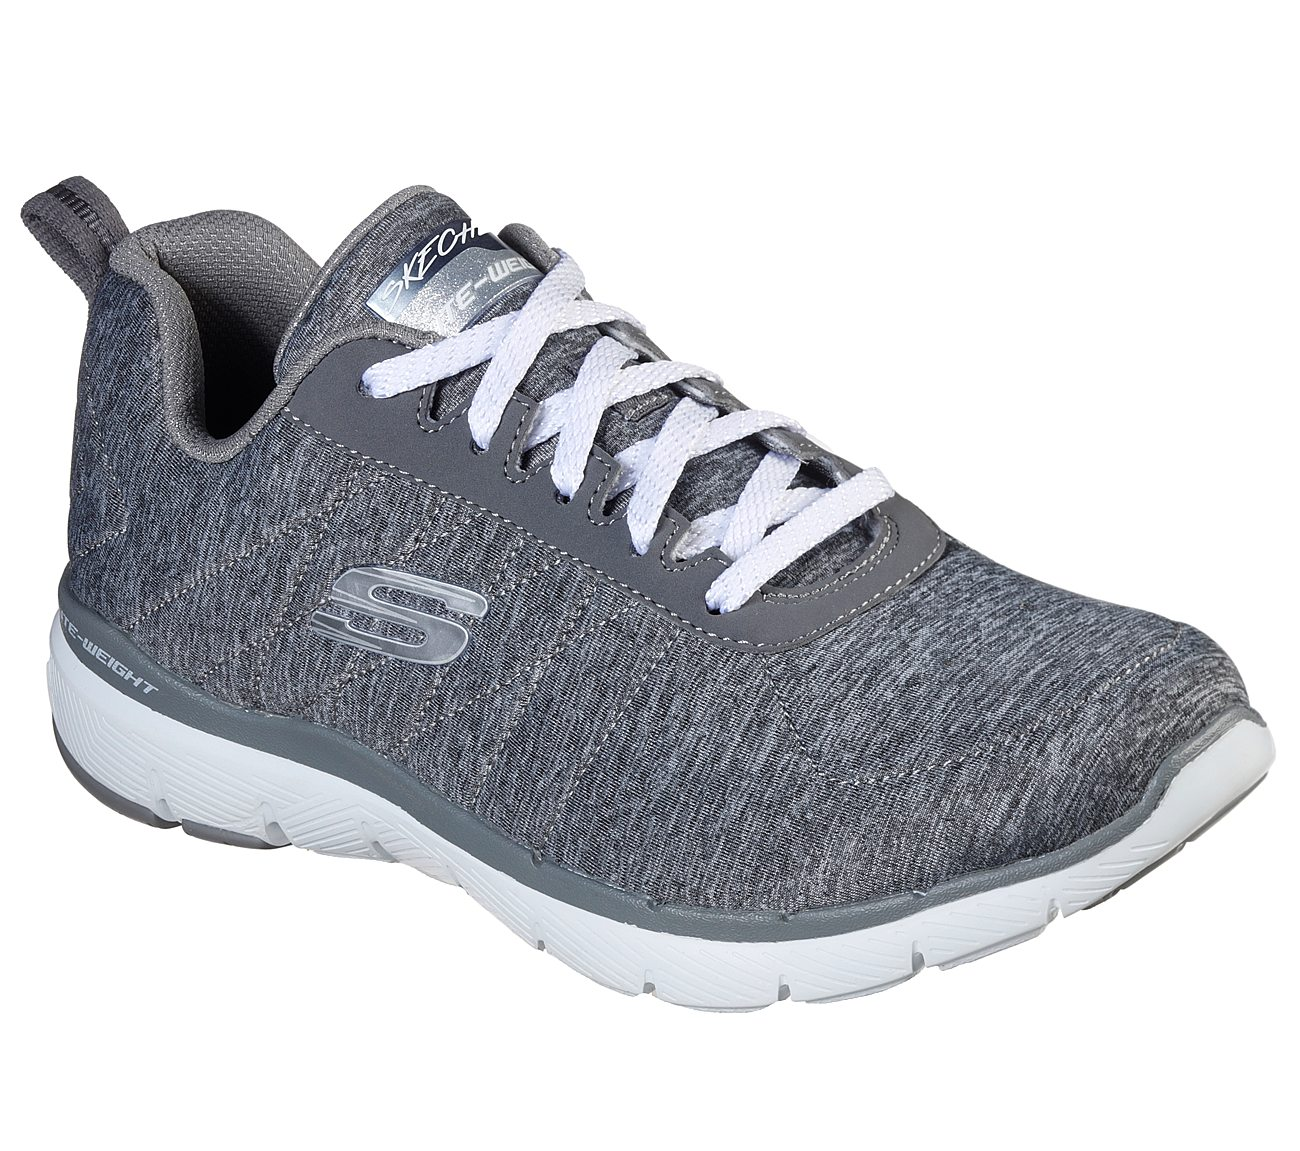 d2145e29532 Buy SKECHERS Flex Appeal 3.0 - Insiders Flex Appeal Shoes only $65.00